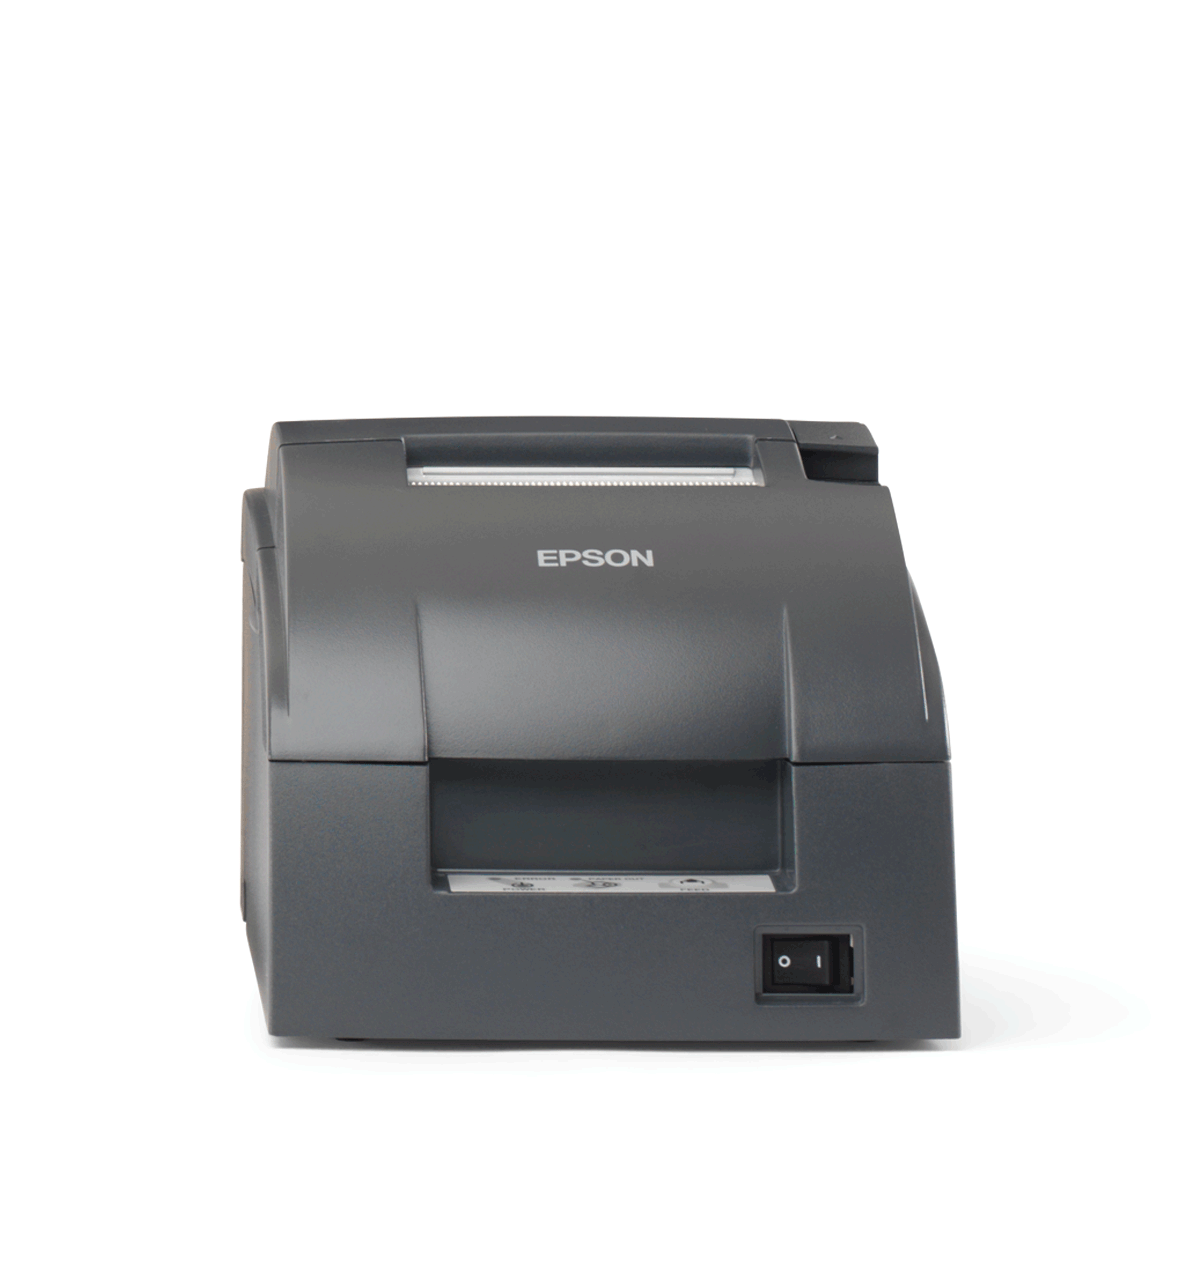 EPSON TM-U220B PRINTER DRIVERS WINDOWS 7 (2019)